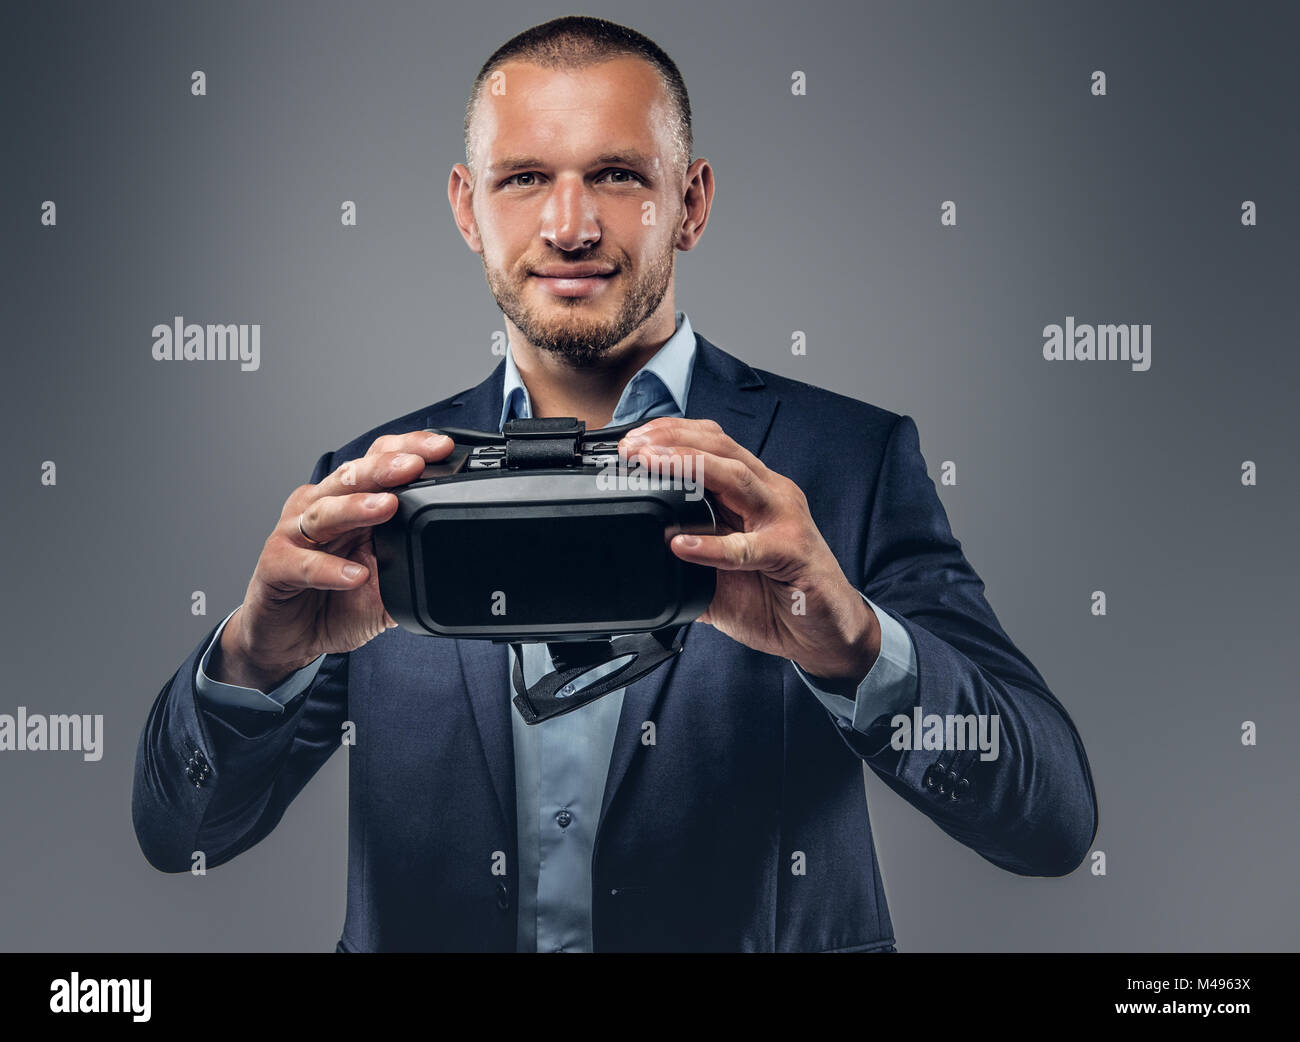 A man showing virtual reality glasses. - Stock Image